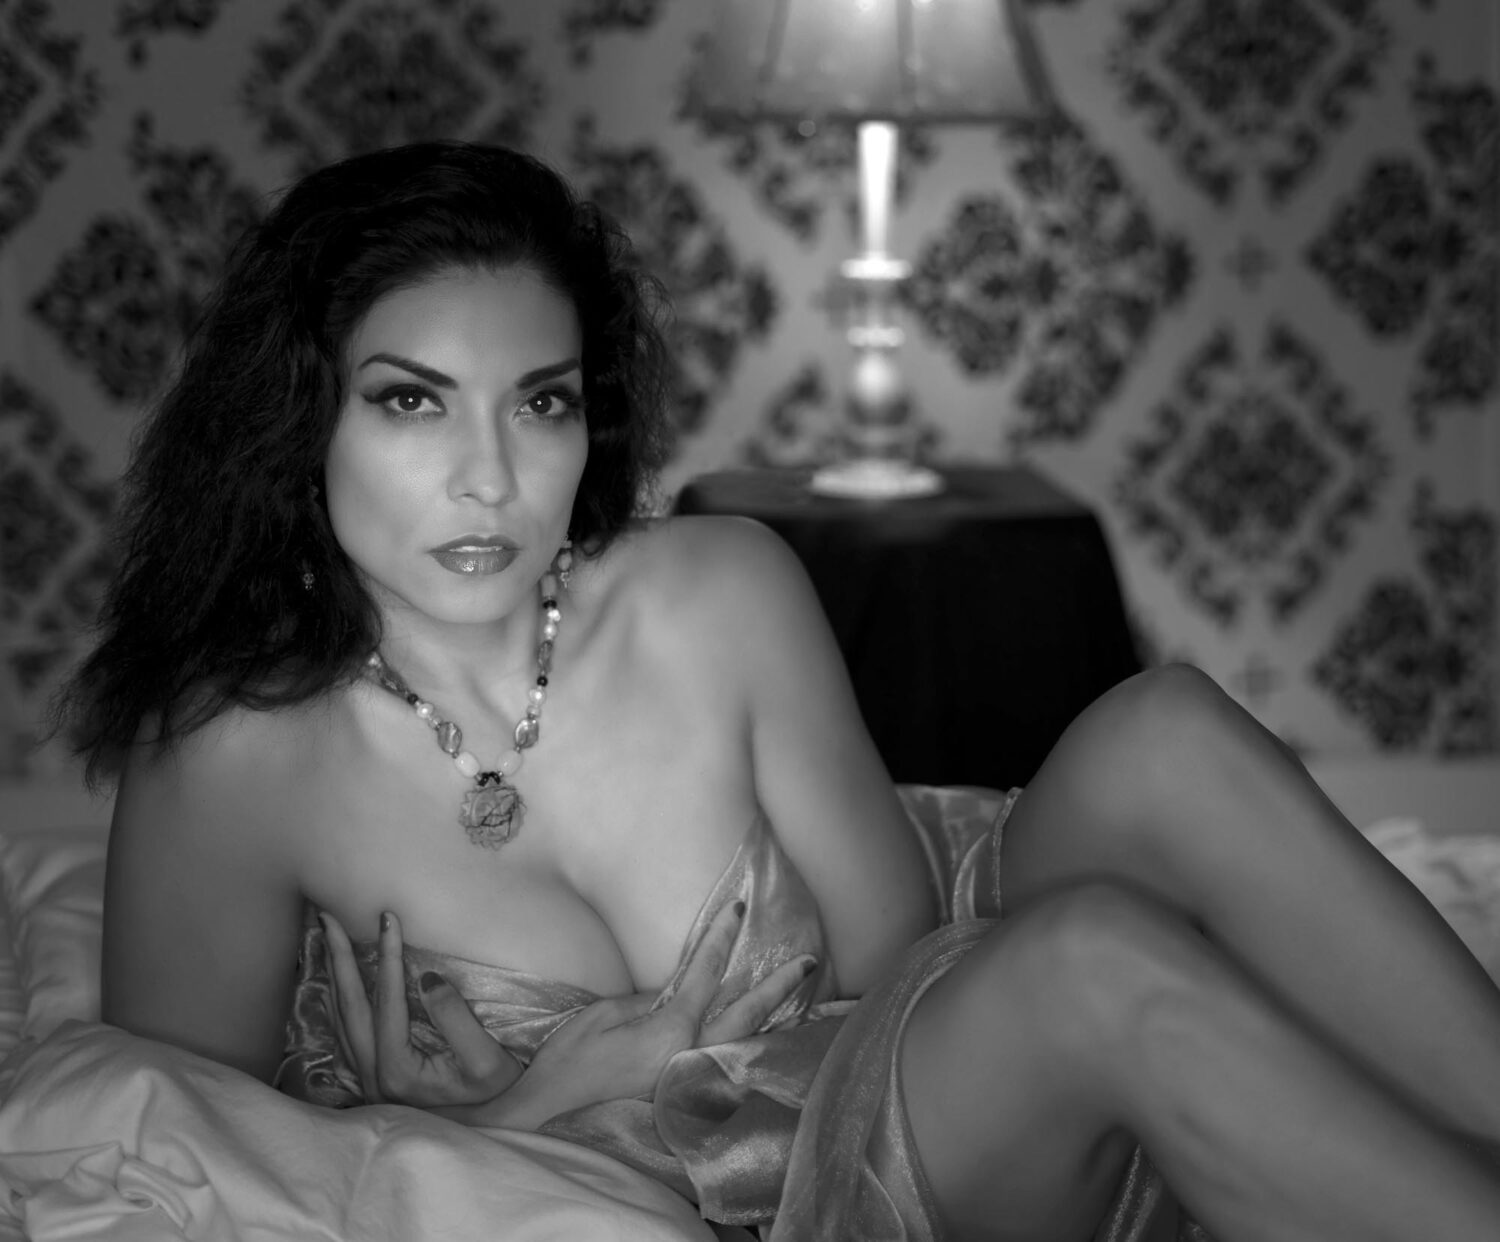 Sensual Latina woman waiting on her bed for that special someone to arrive